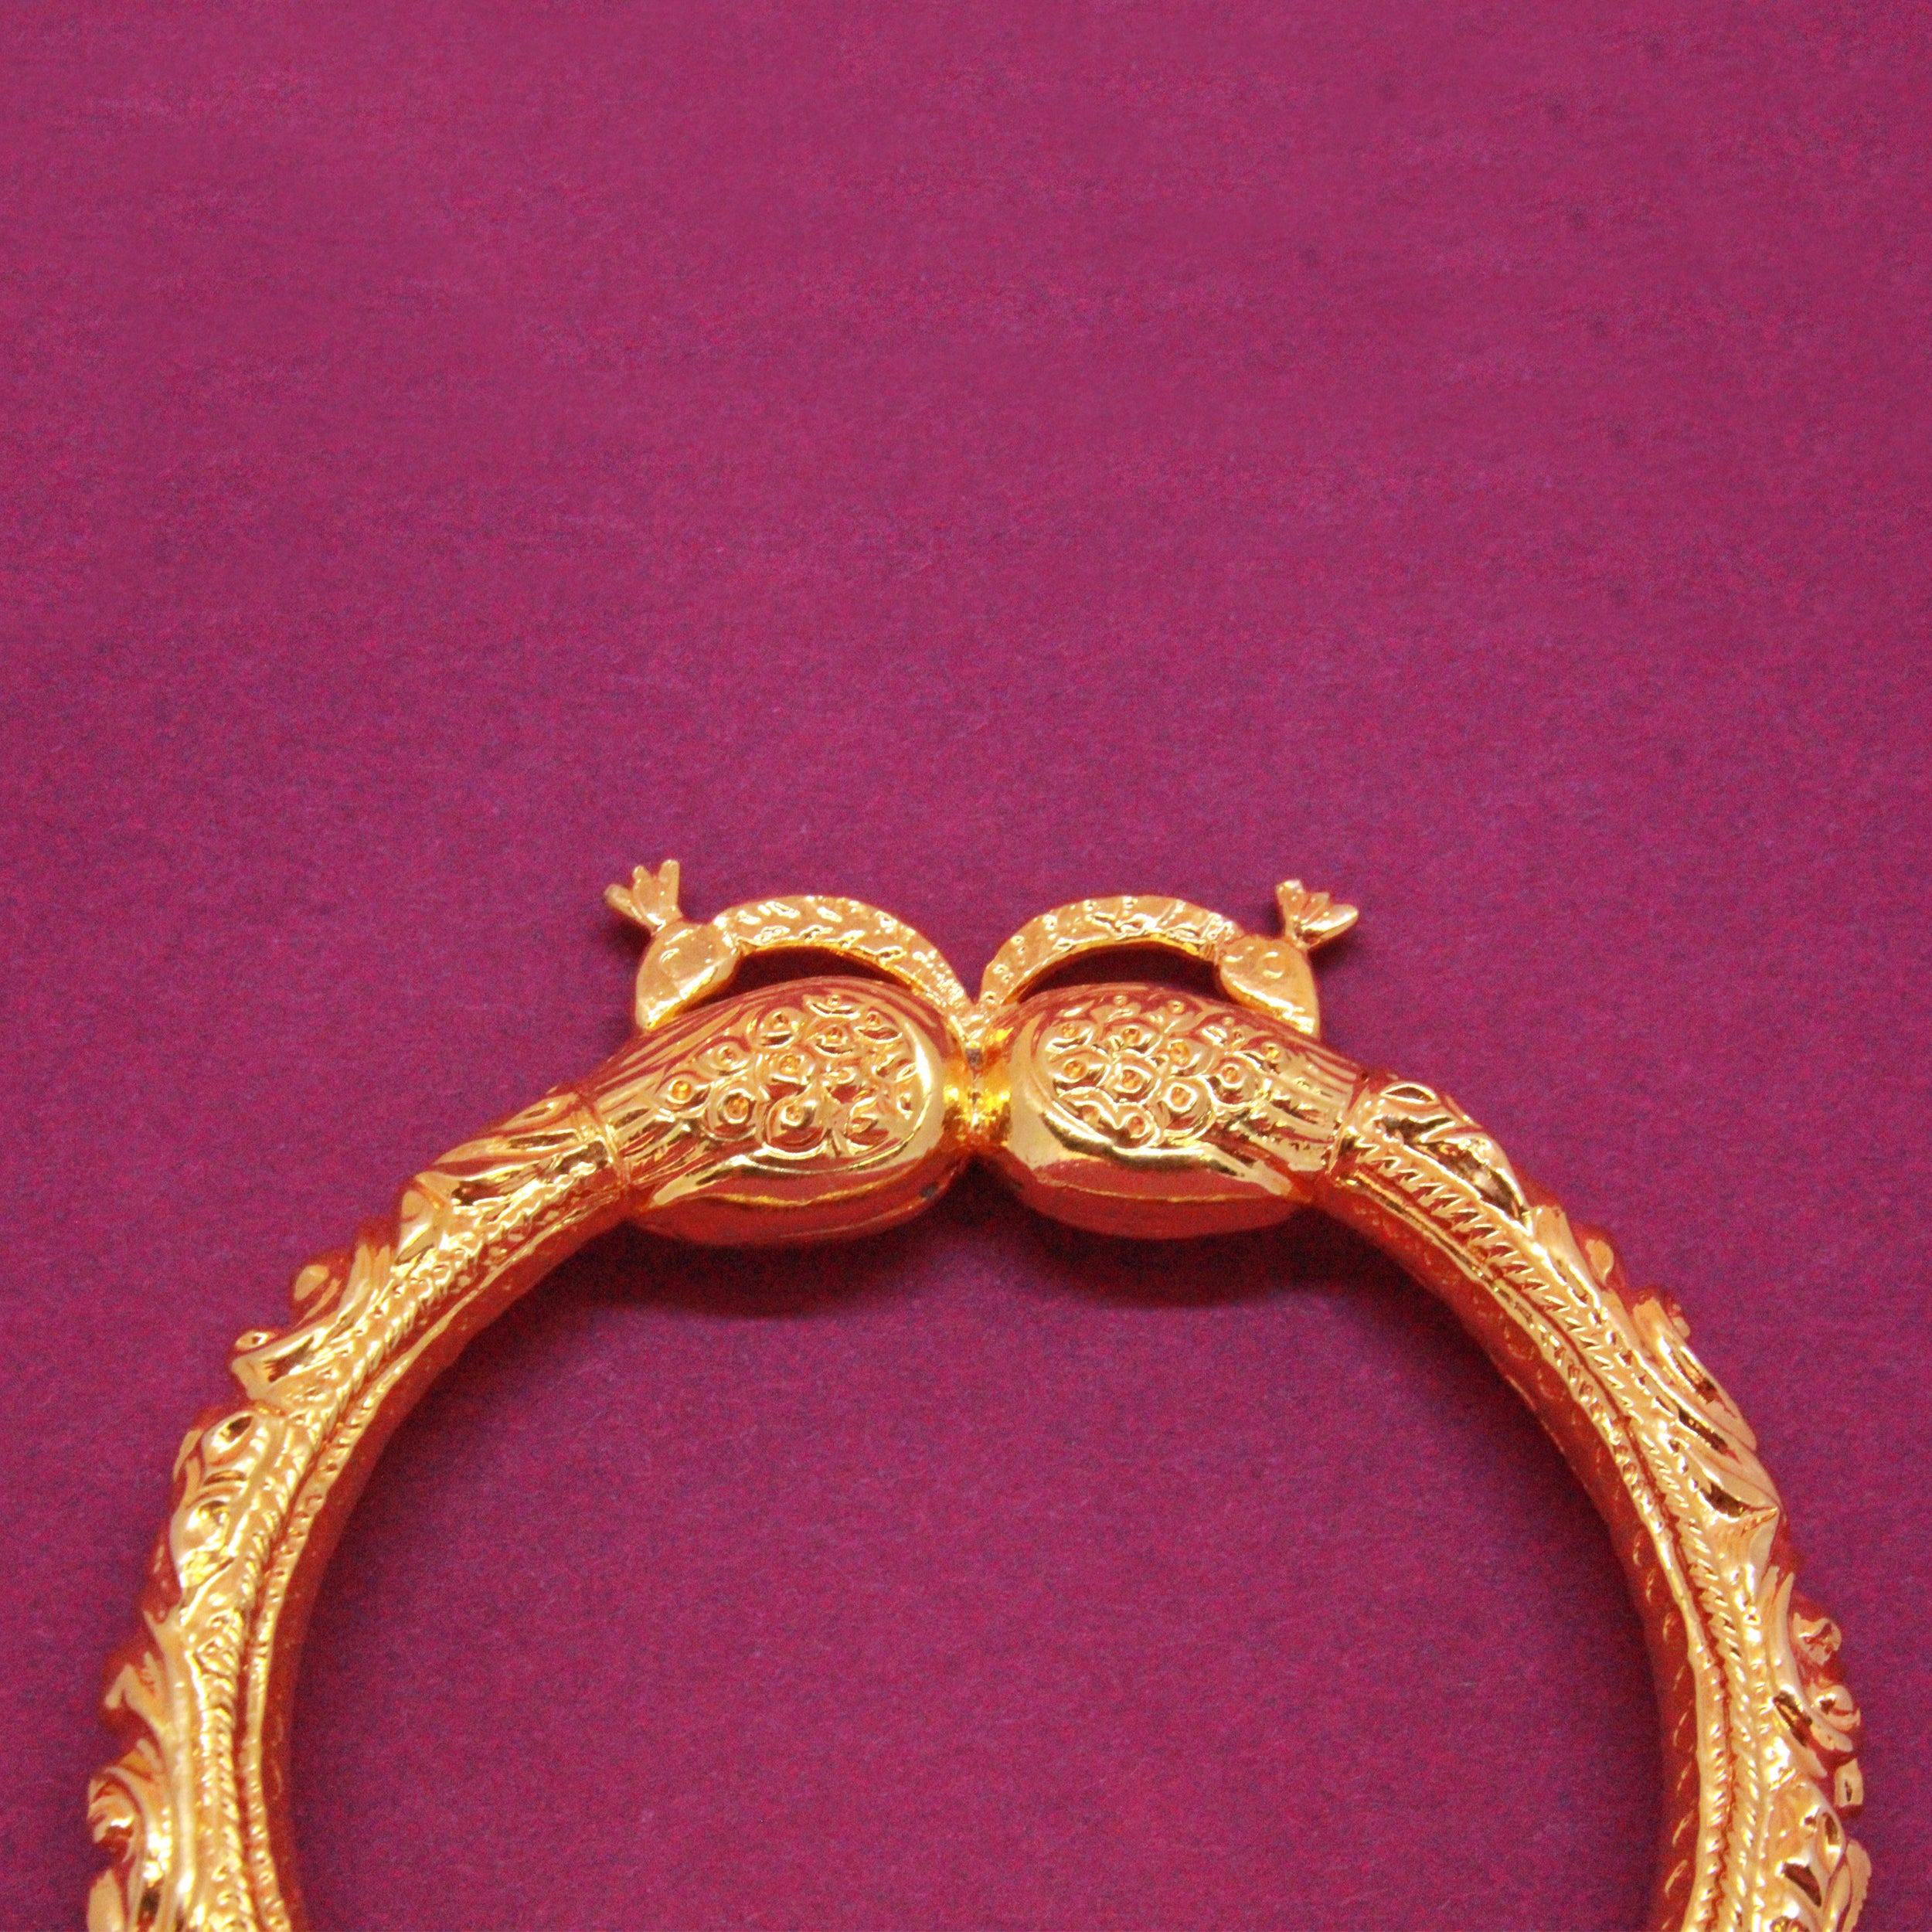 Peacock Bangle with Carving